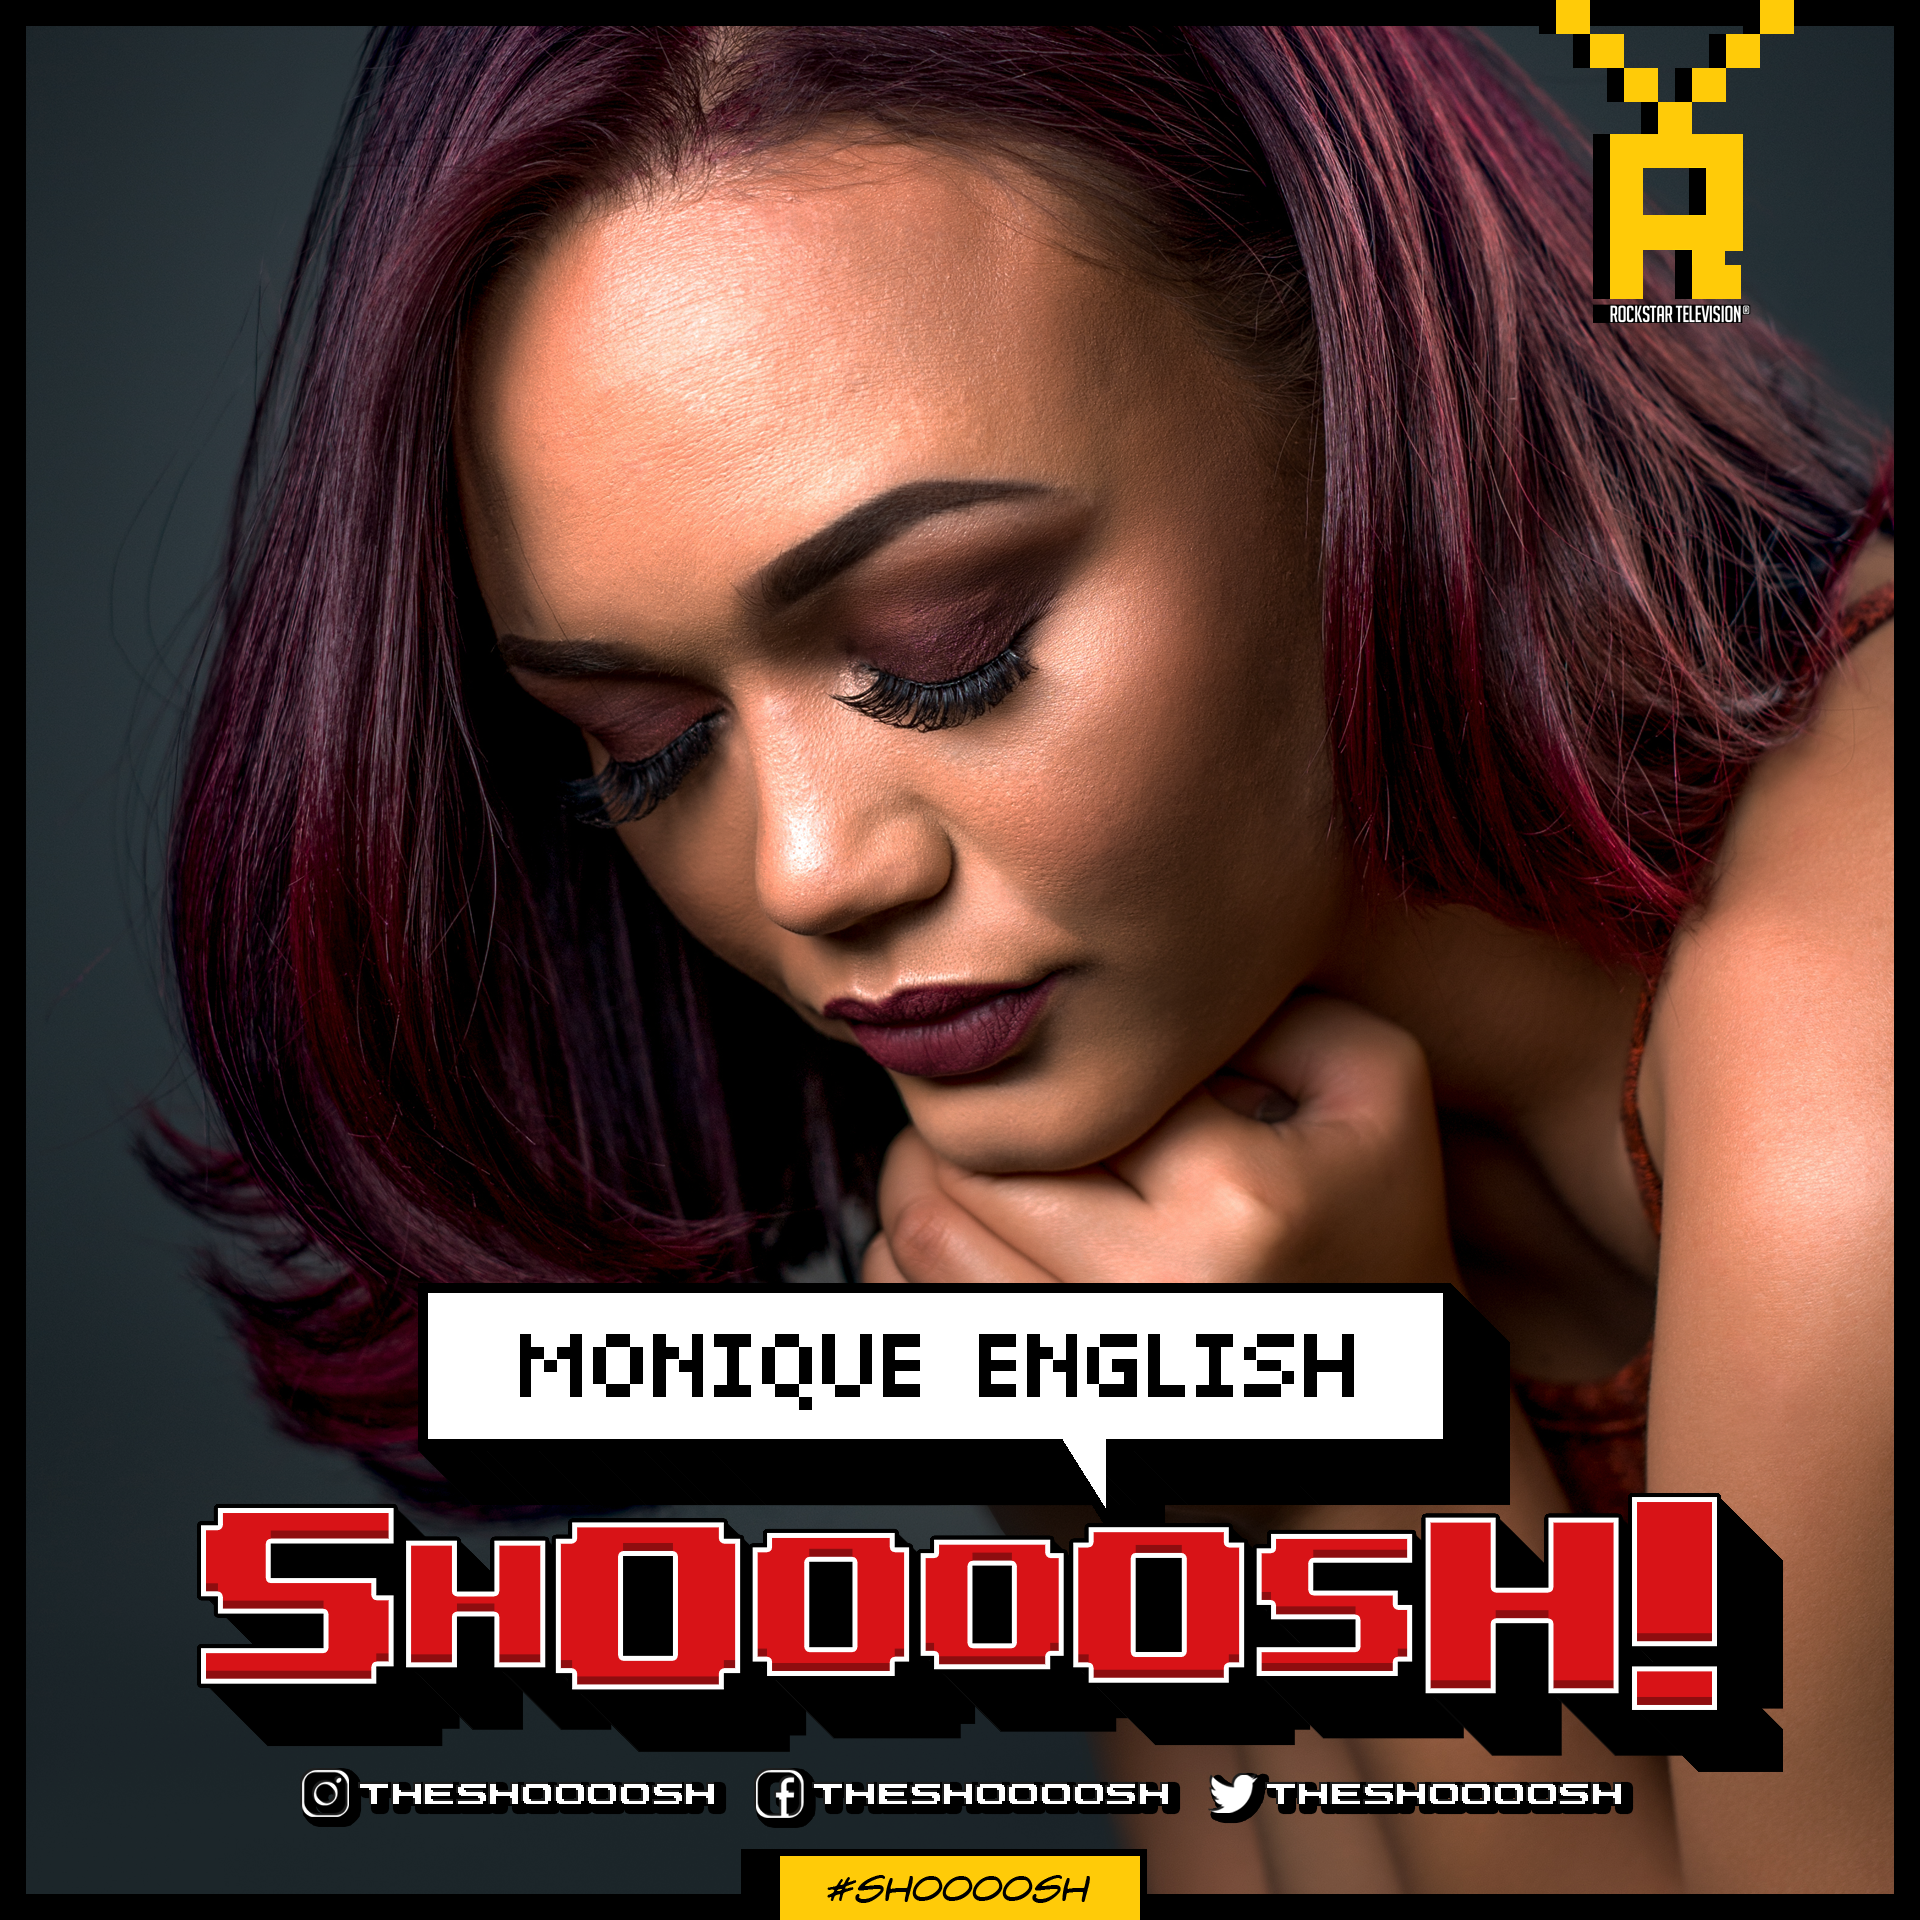 SHOOOOSH! MONIQUE ENGLISH00001